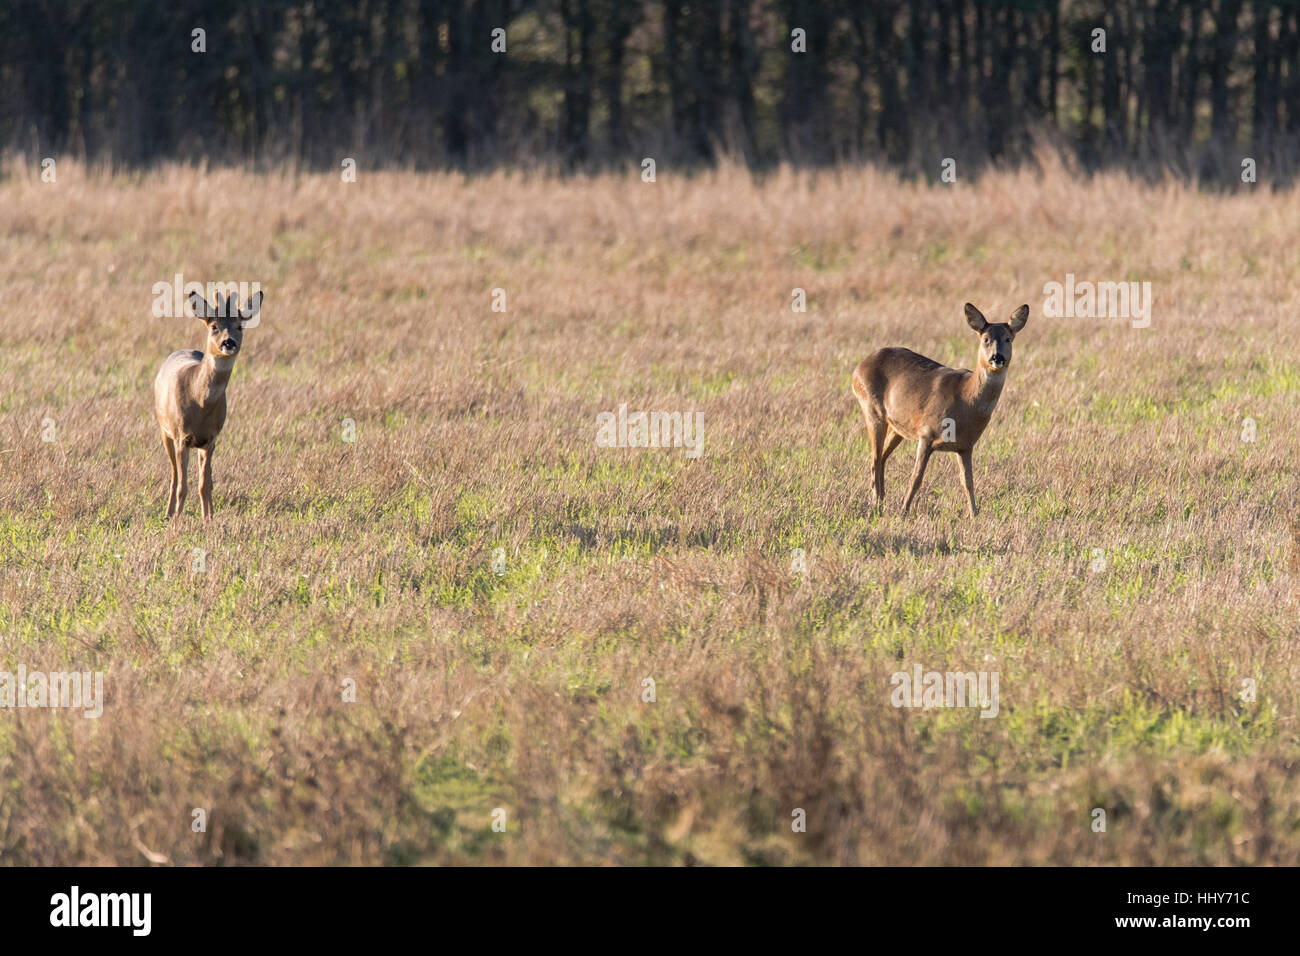 Roe deer (Capreolus capreolus) male and female, in family Cervidae, buck with growing antlers still covered in velvet - Stock Image